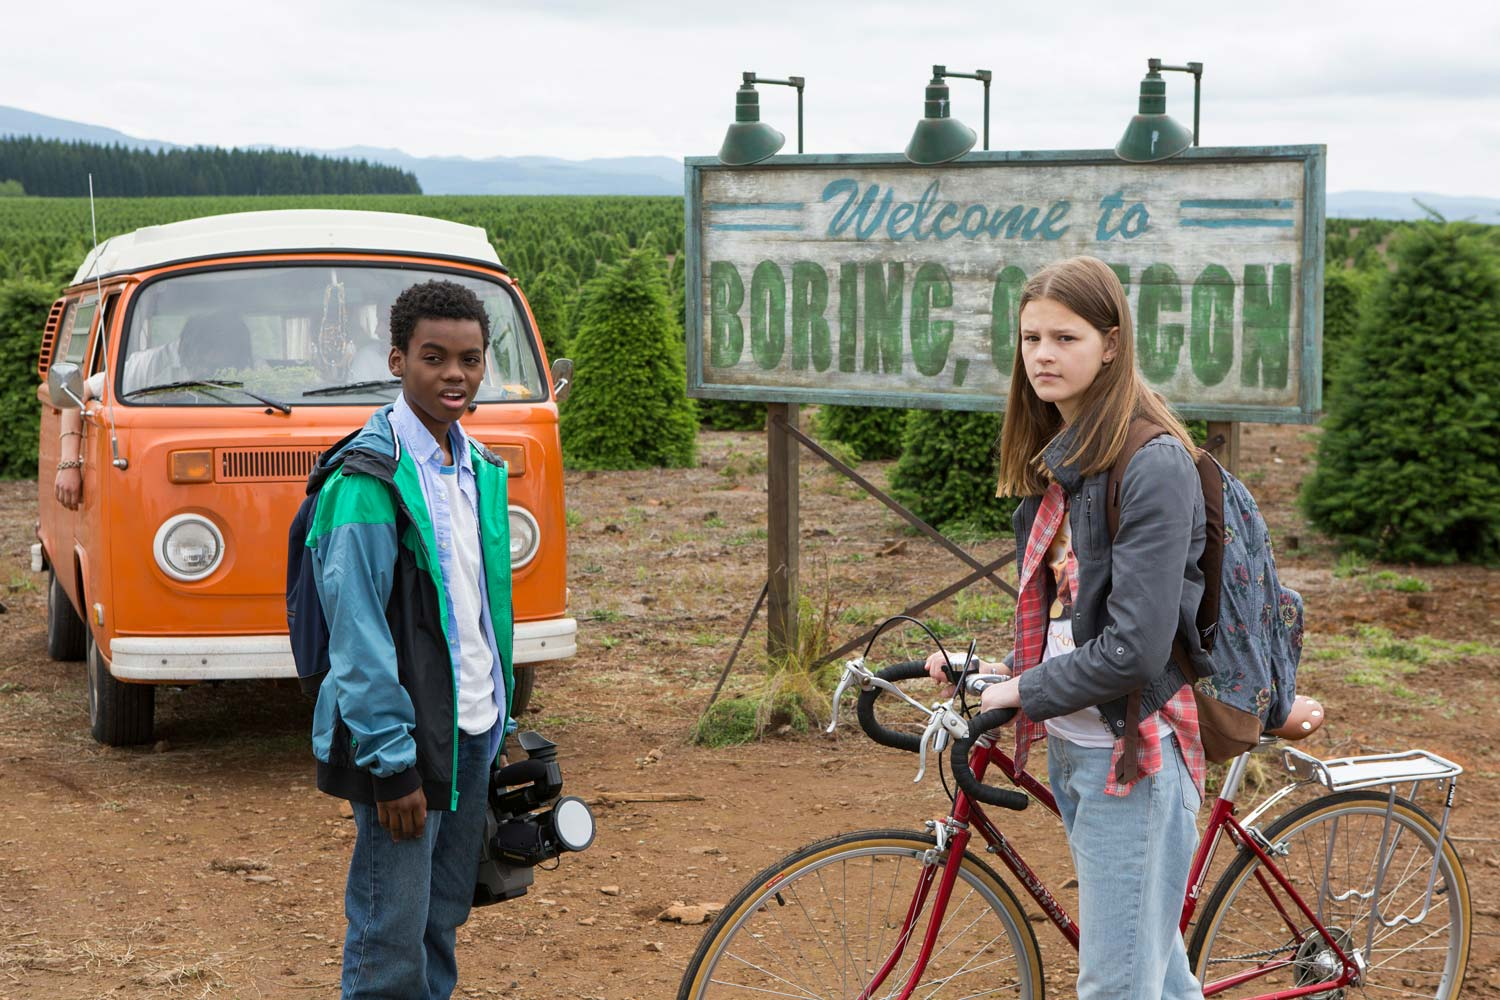 TODO ES UNA MIERDA (Everything Sucks!)  - Peyton Kennedy y Jahi Winston